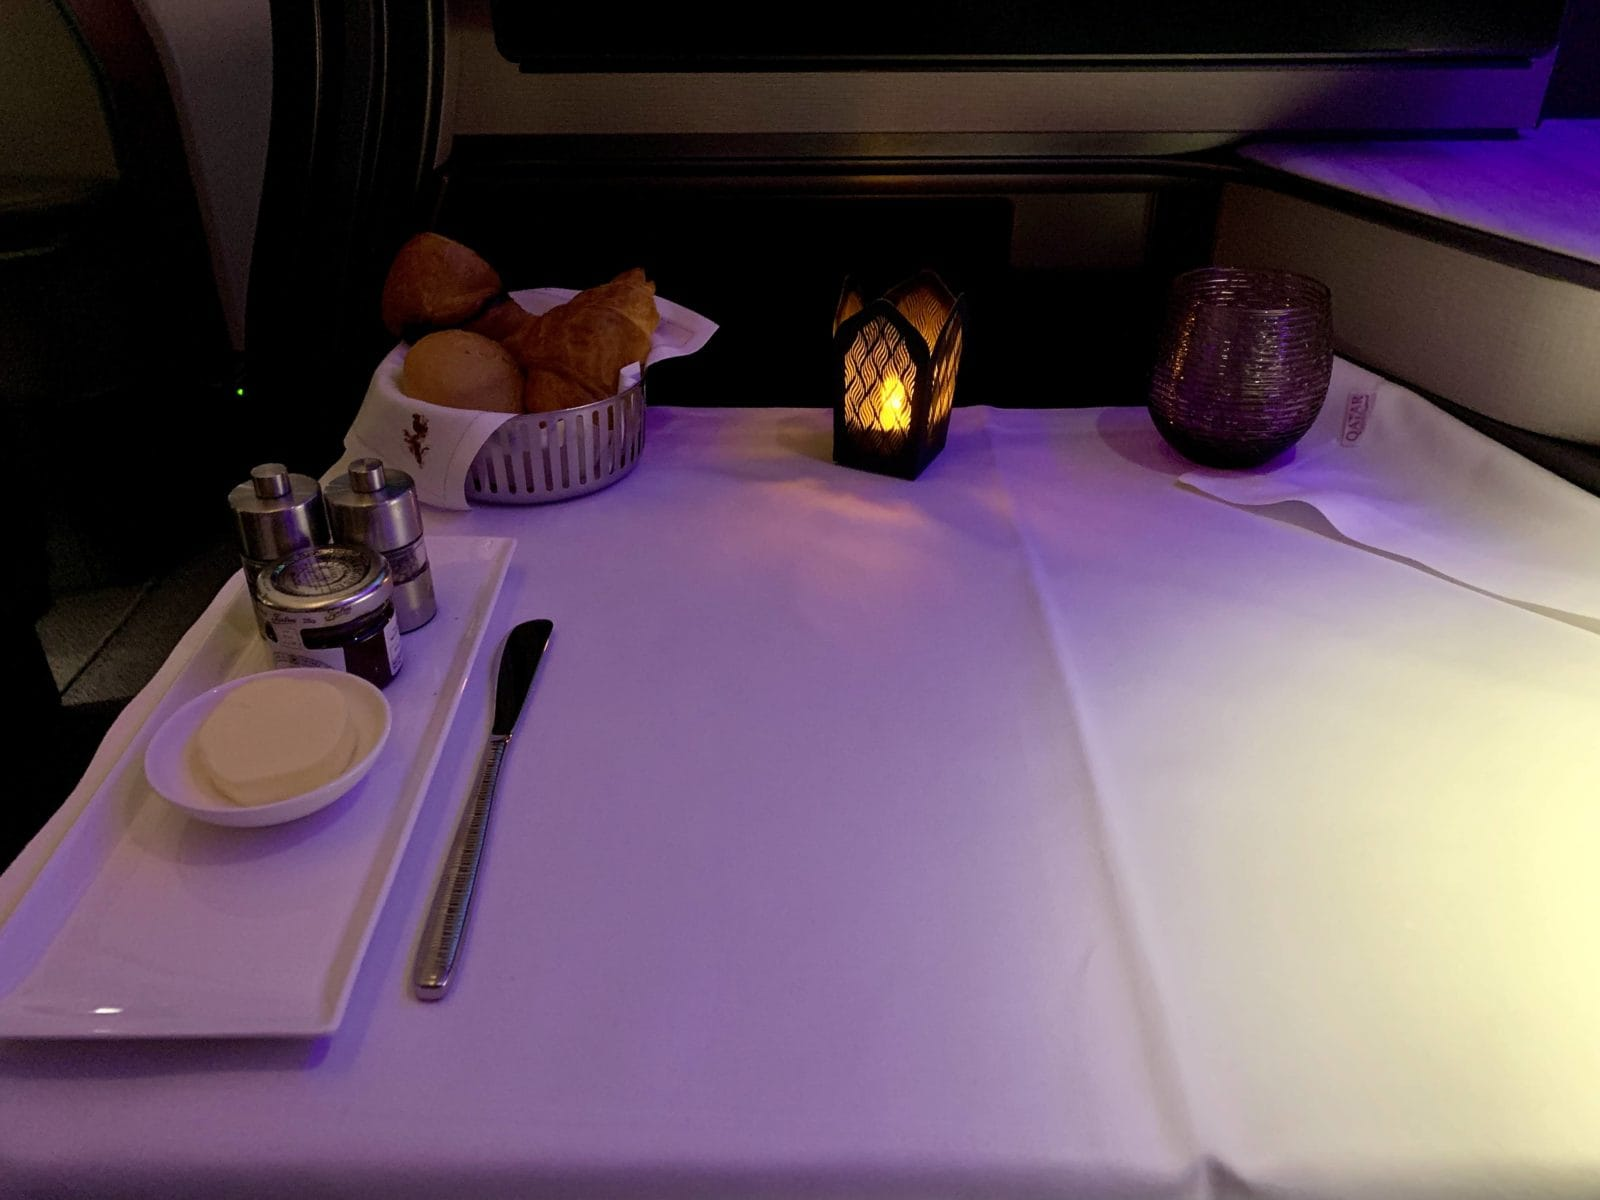 Qatar Airways Qsuite Boeing 777-300ER Business Class Tisch